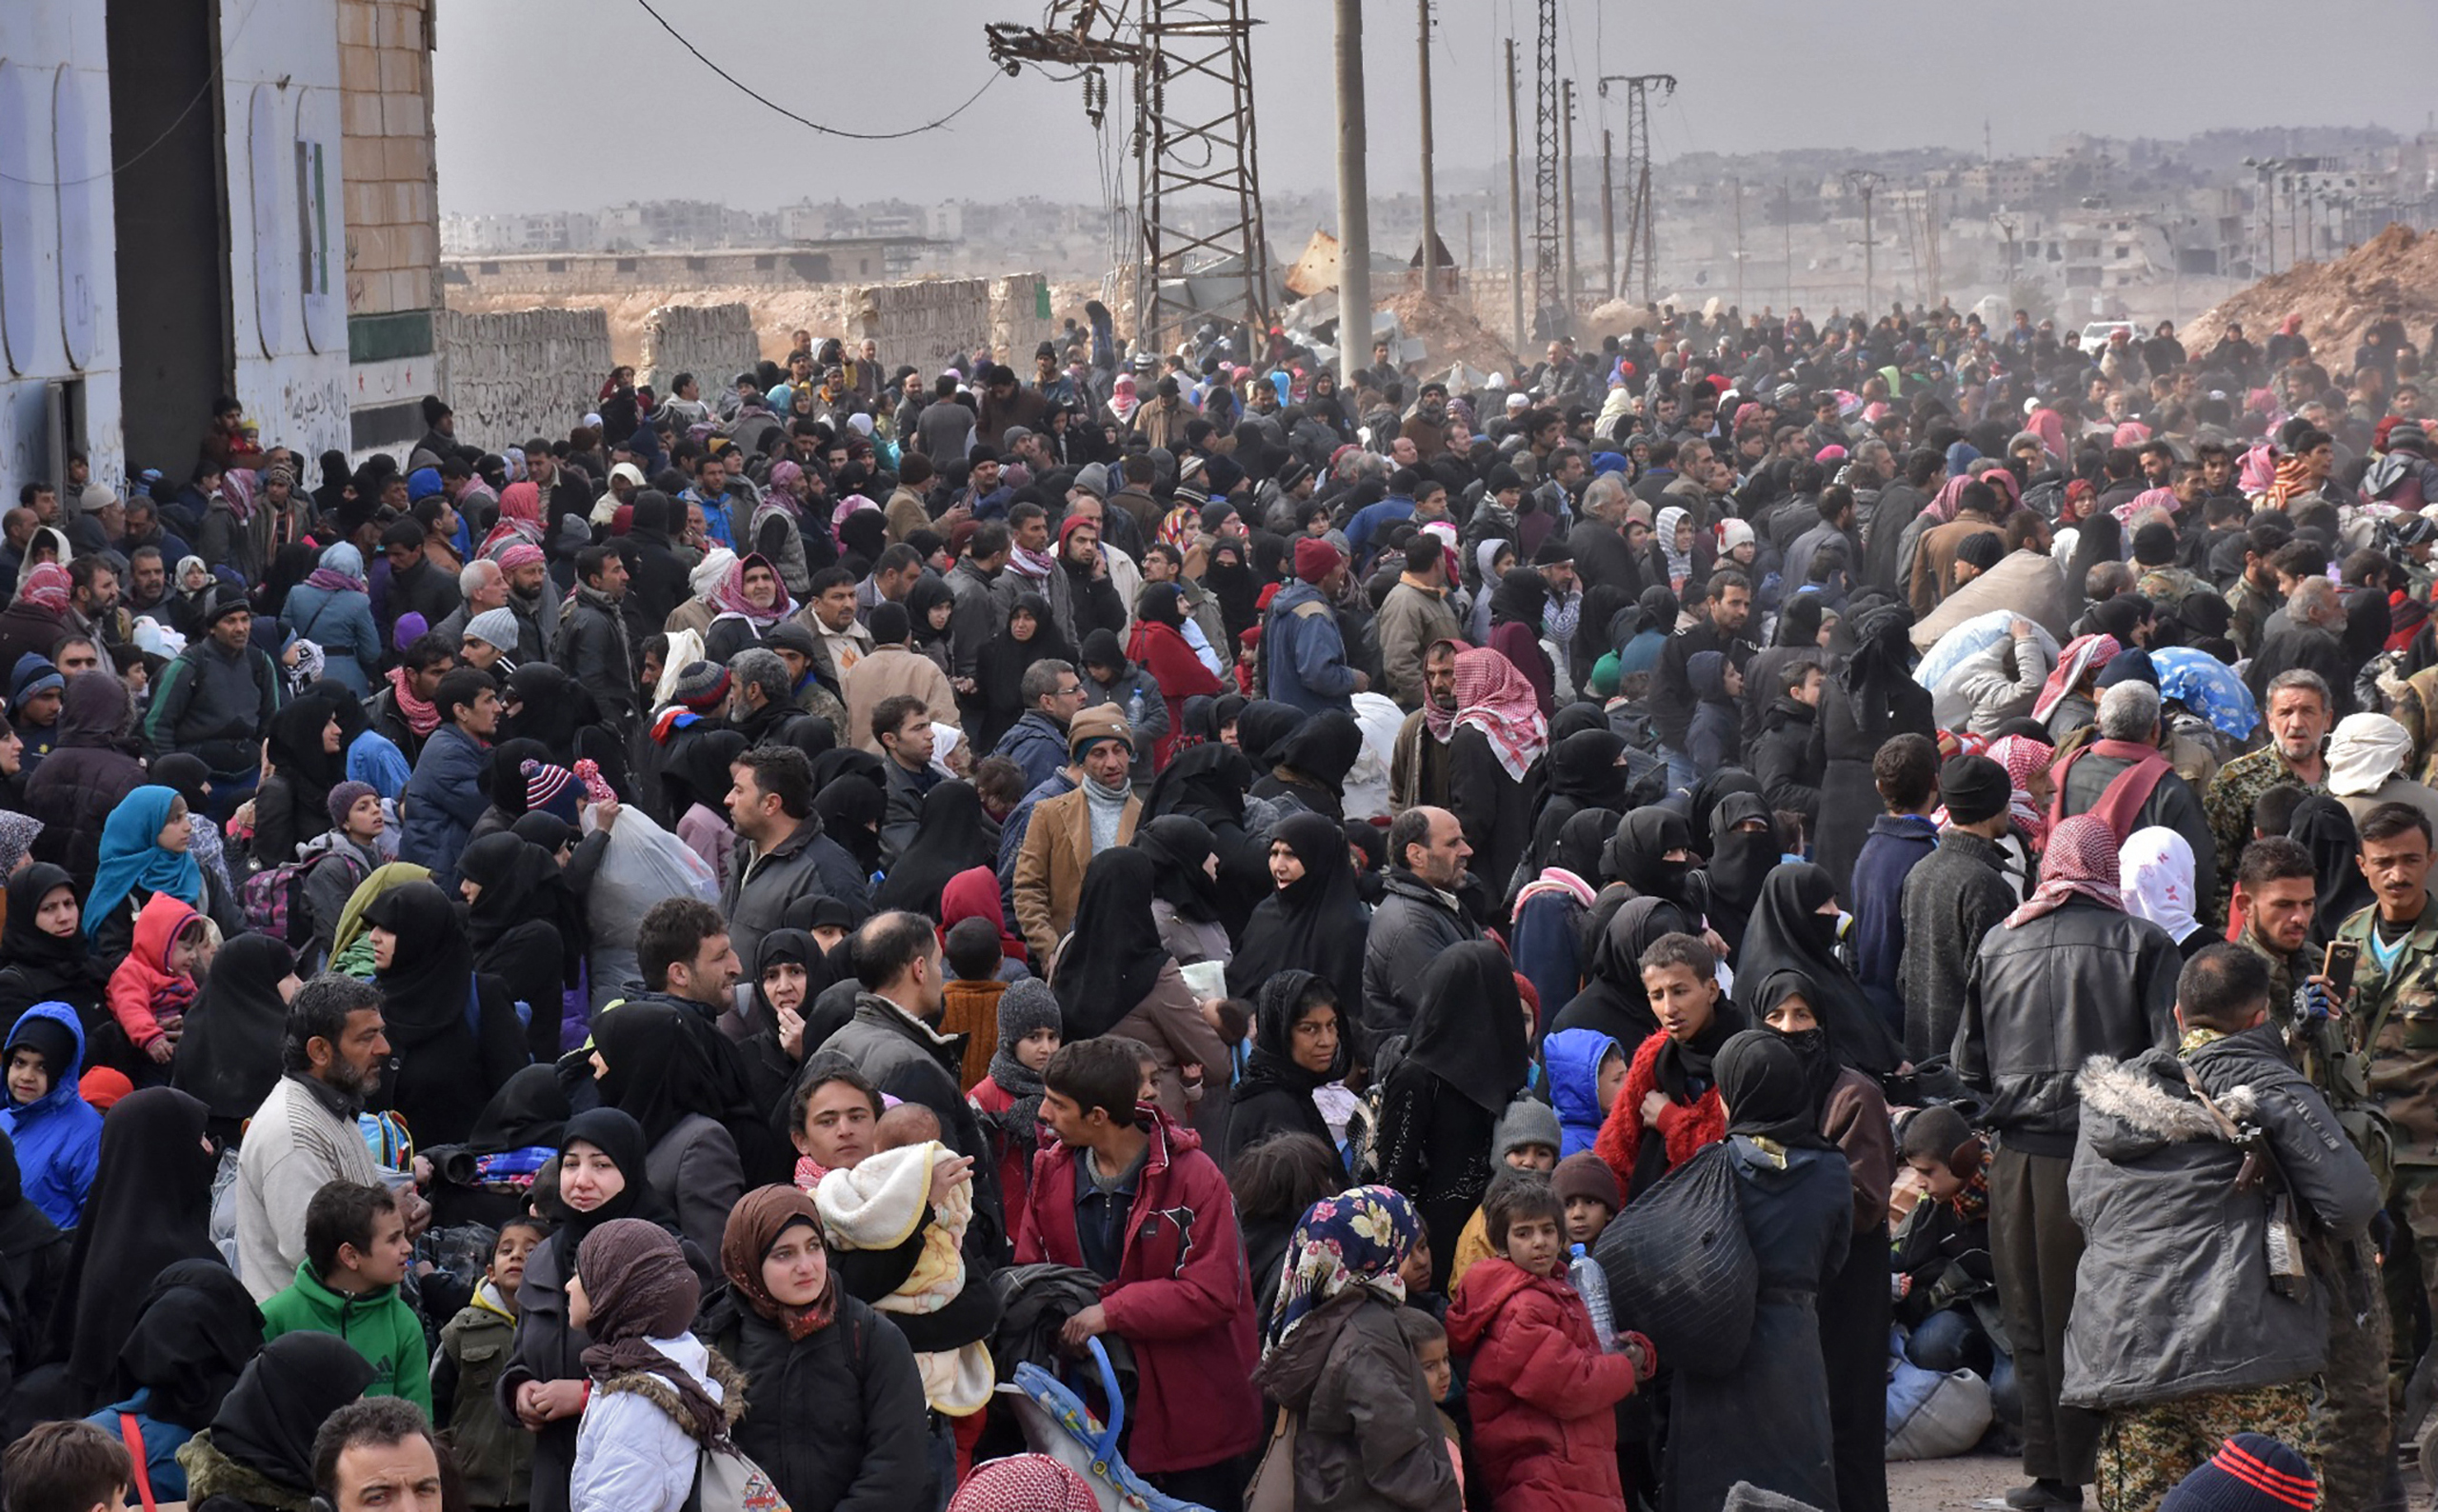 Syrian families, fleeing from various eastern districts of Aleppo, queue to get onto governmental buses in the government-held eastern neighborhood of Jabal Badro, before heading to government-controlled western Aleppo, on Nov. 29, 2016